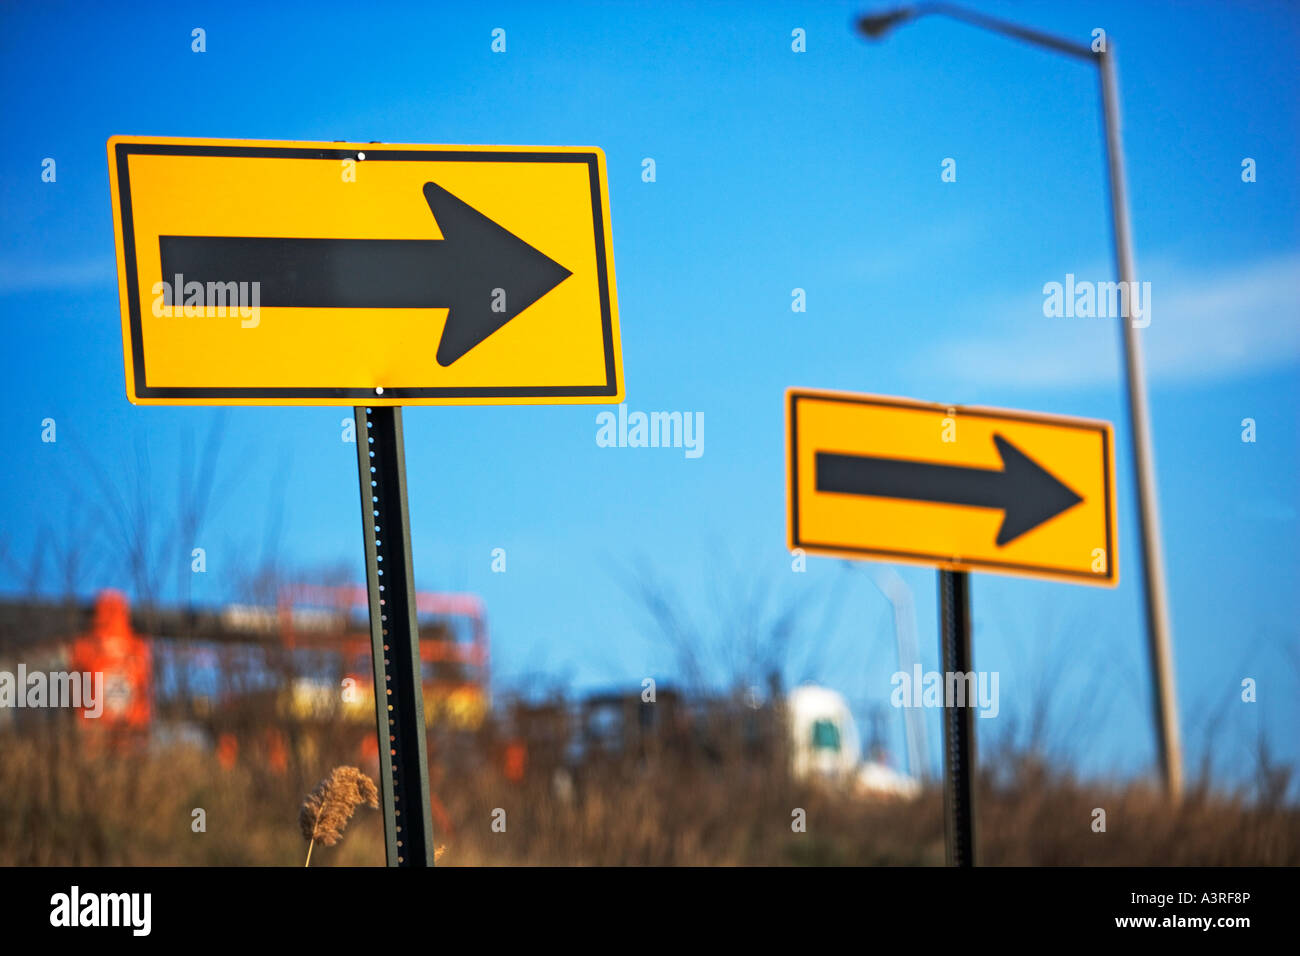 Aid, Arrow, Arrows, Assist, Assistance, Direction, Direction, indicator, Help, Helpful, Highway, Code, Indicator, - Stock Image